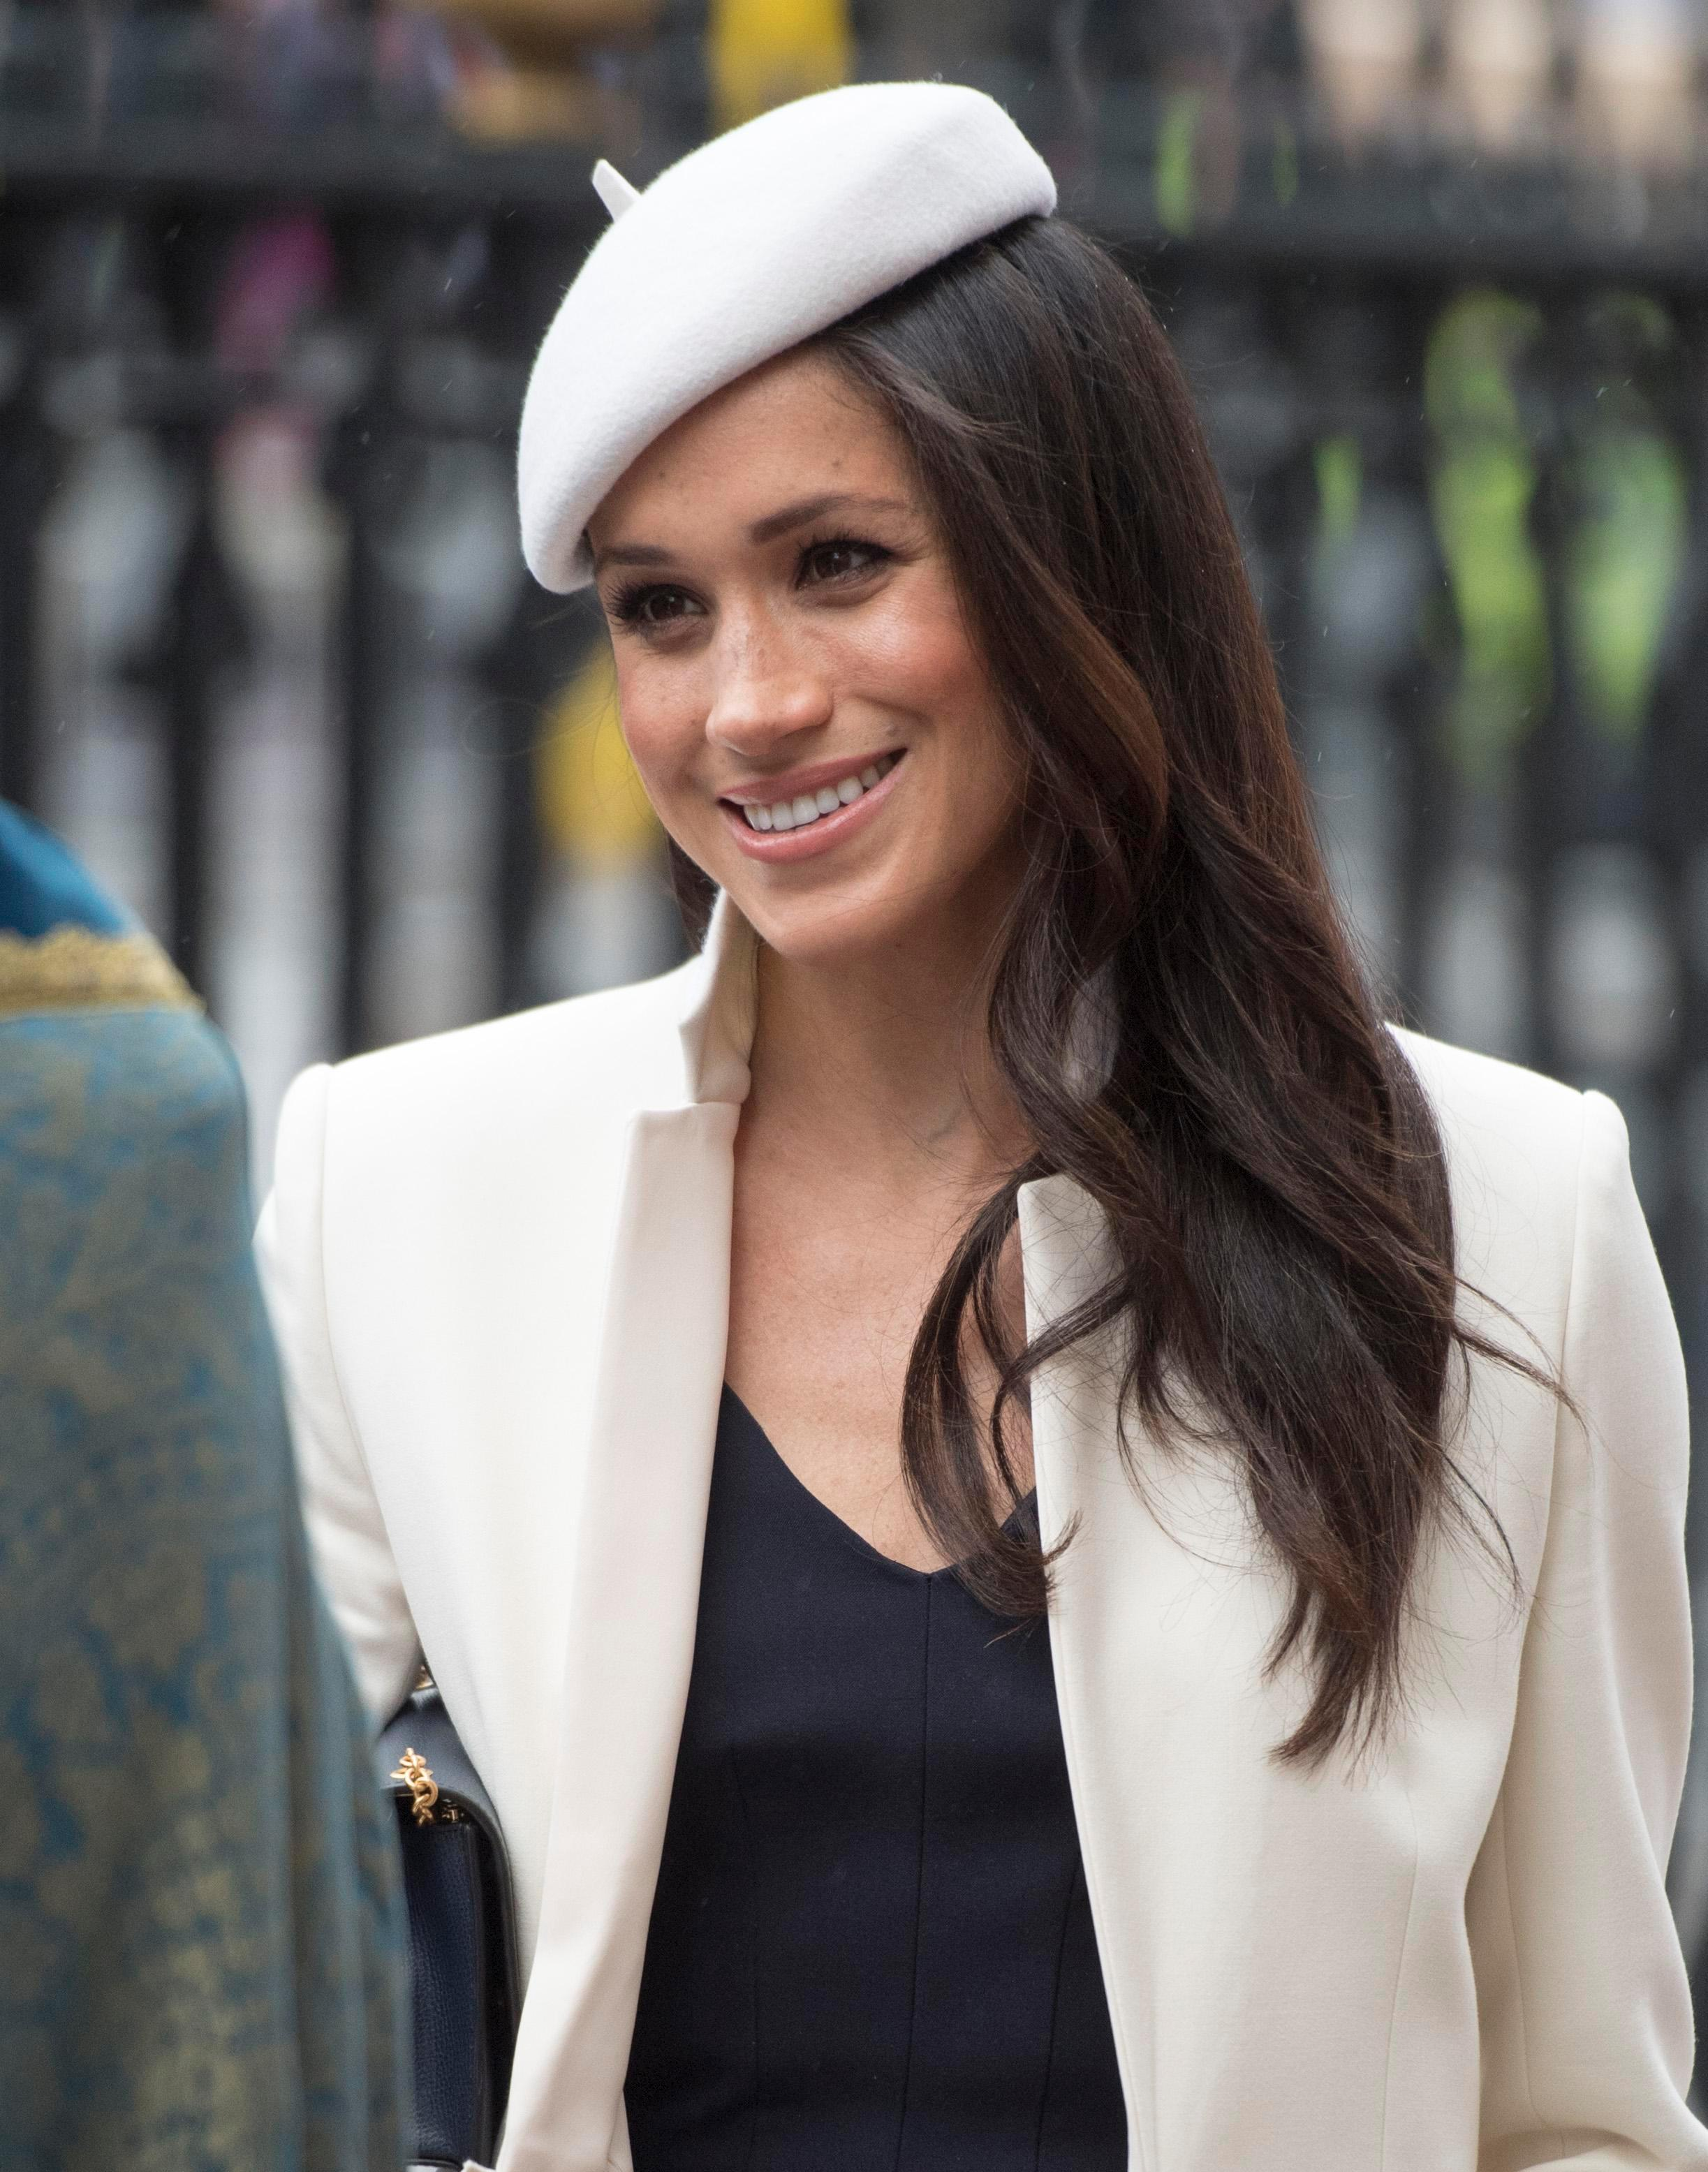 This is the unusual thing that Meghan Markle always does before travelling to avoid getting ill